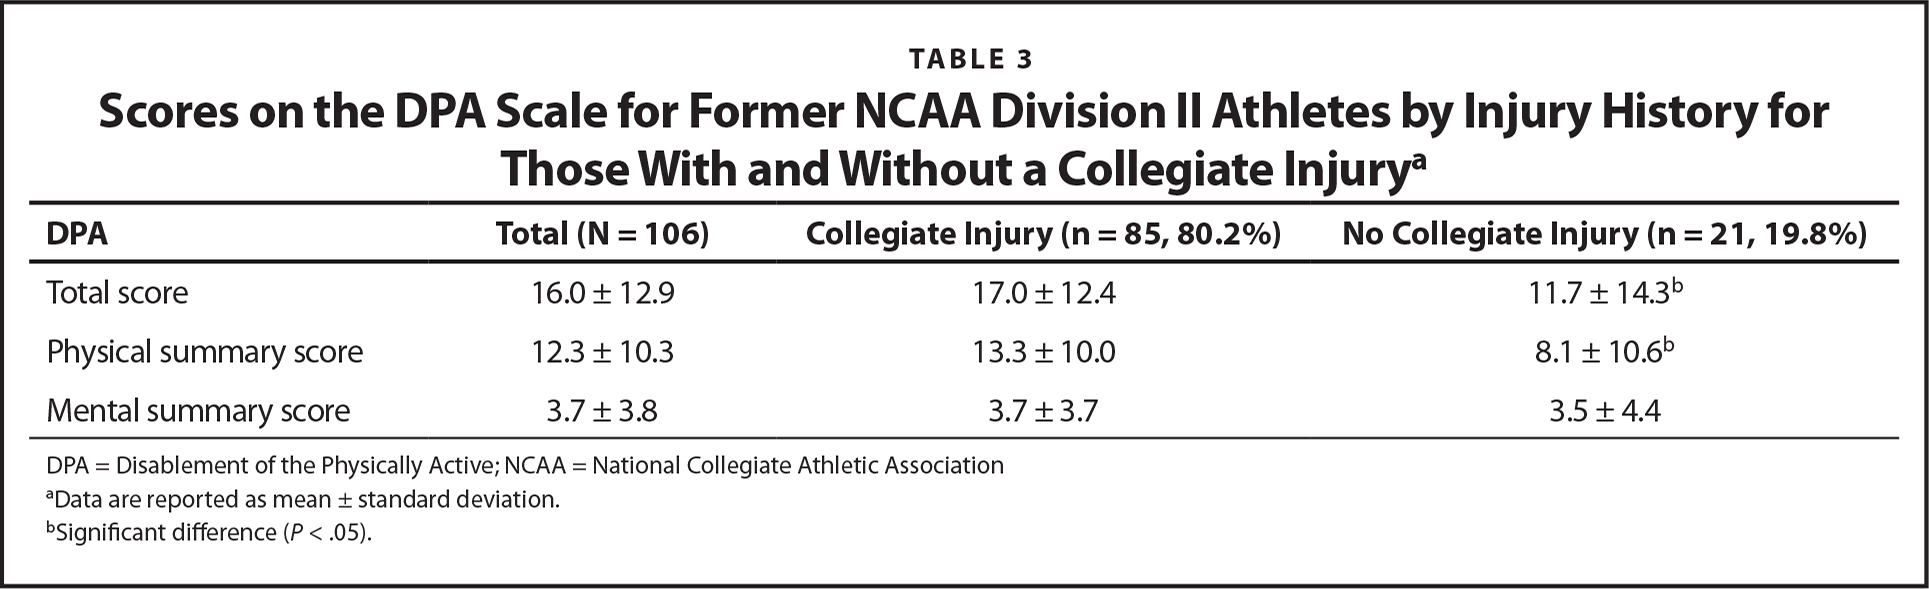 Scores on the DPA Scale for Former NCAA Division II Athletes by Injury History for Those With and Without a Collegiate Injurya